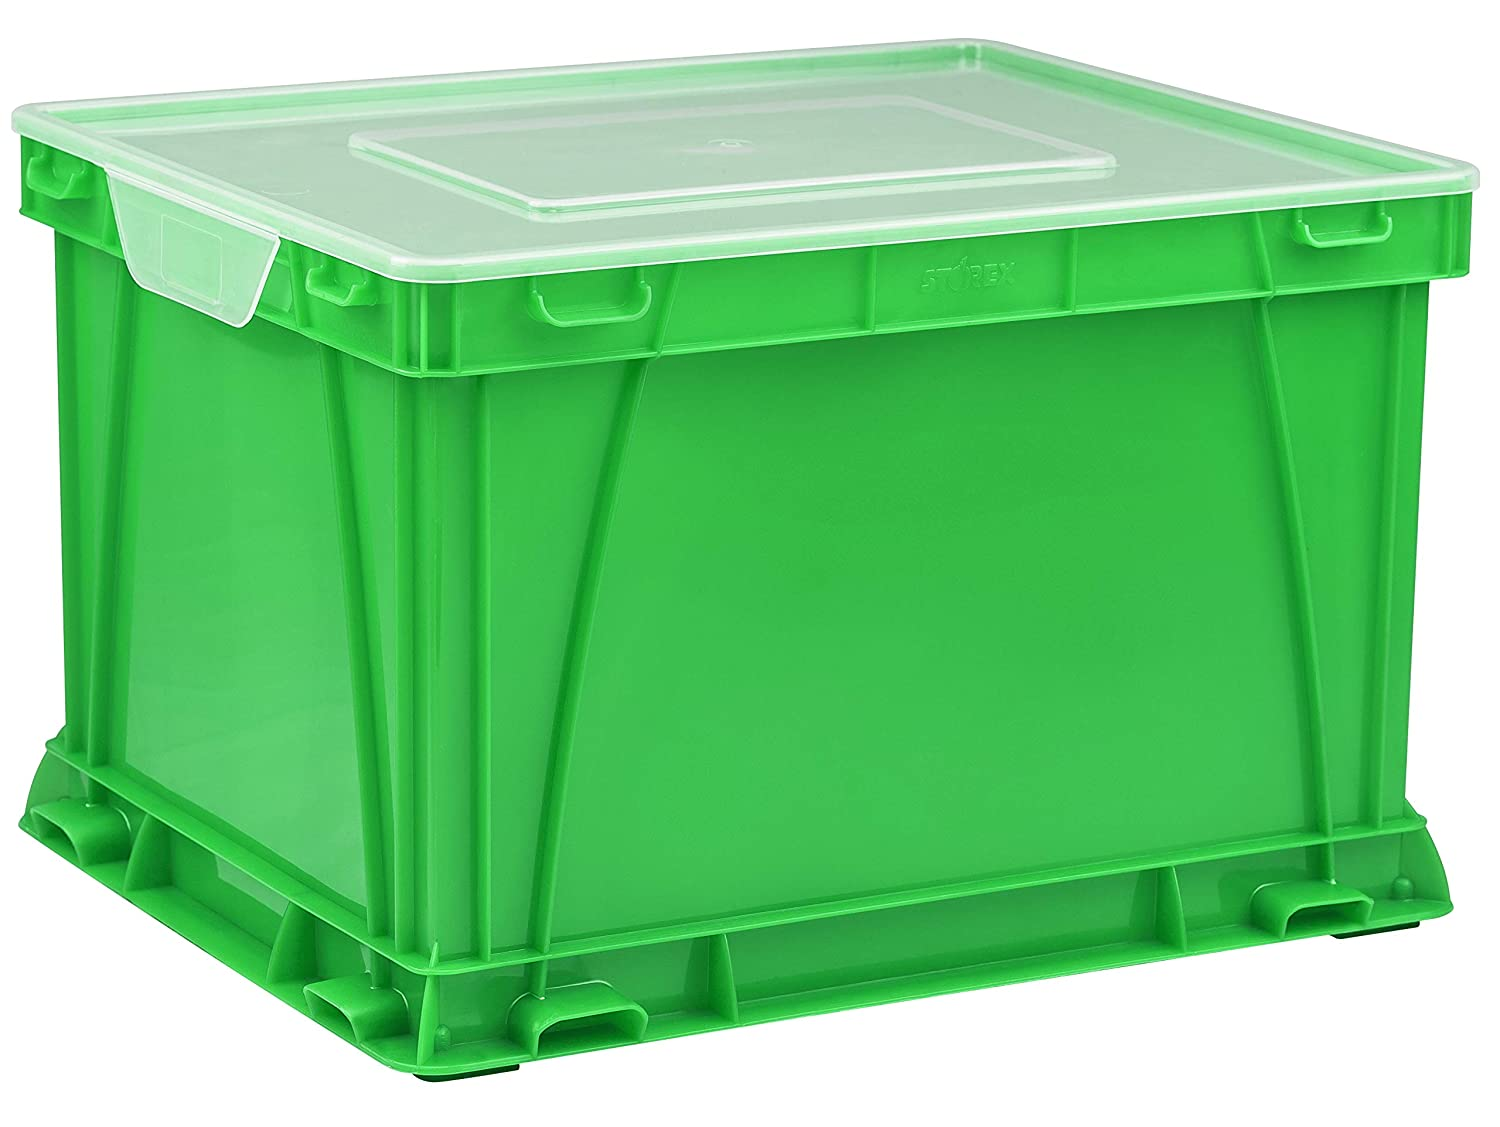 Black//Clear STX62005U03C Case of 3 Storex Storage and Filing Cube 17.25 x 14.25 x 10.5 Inches